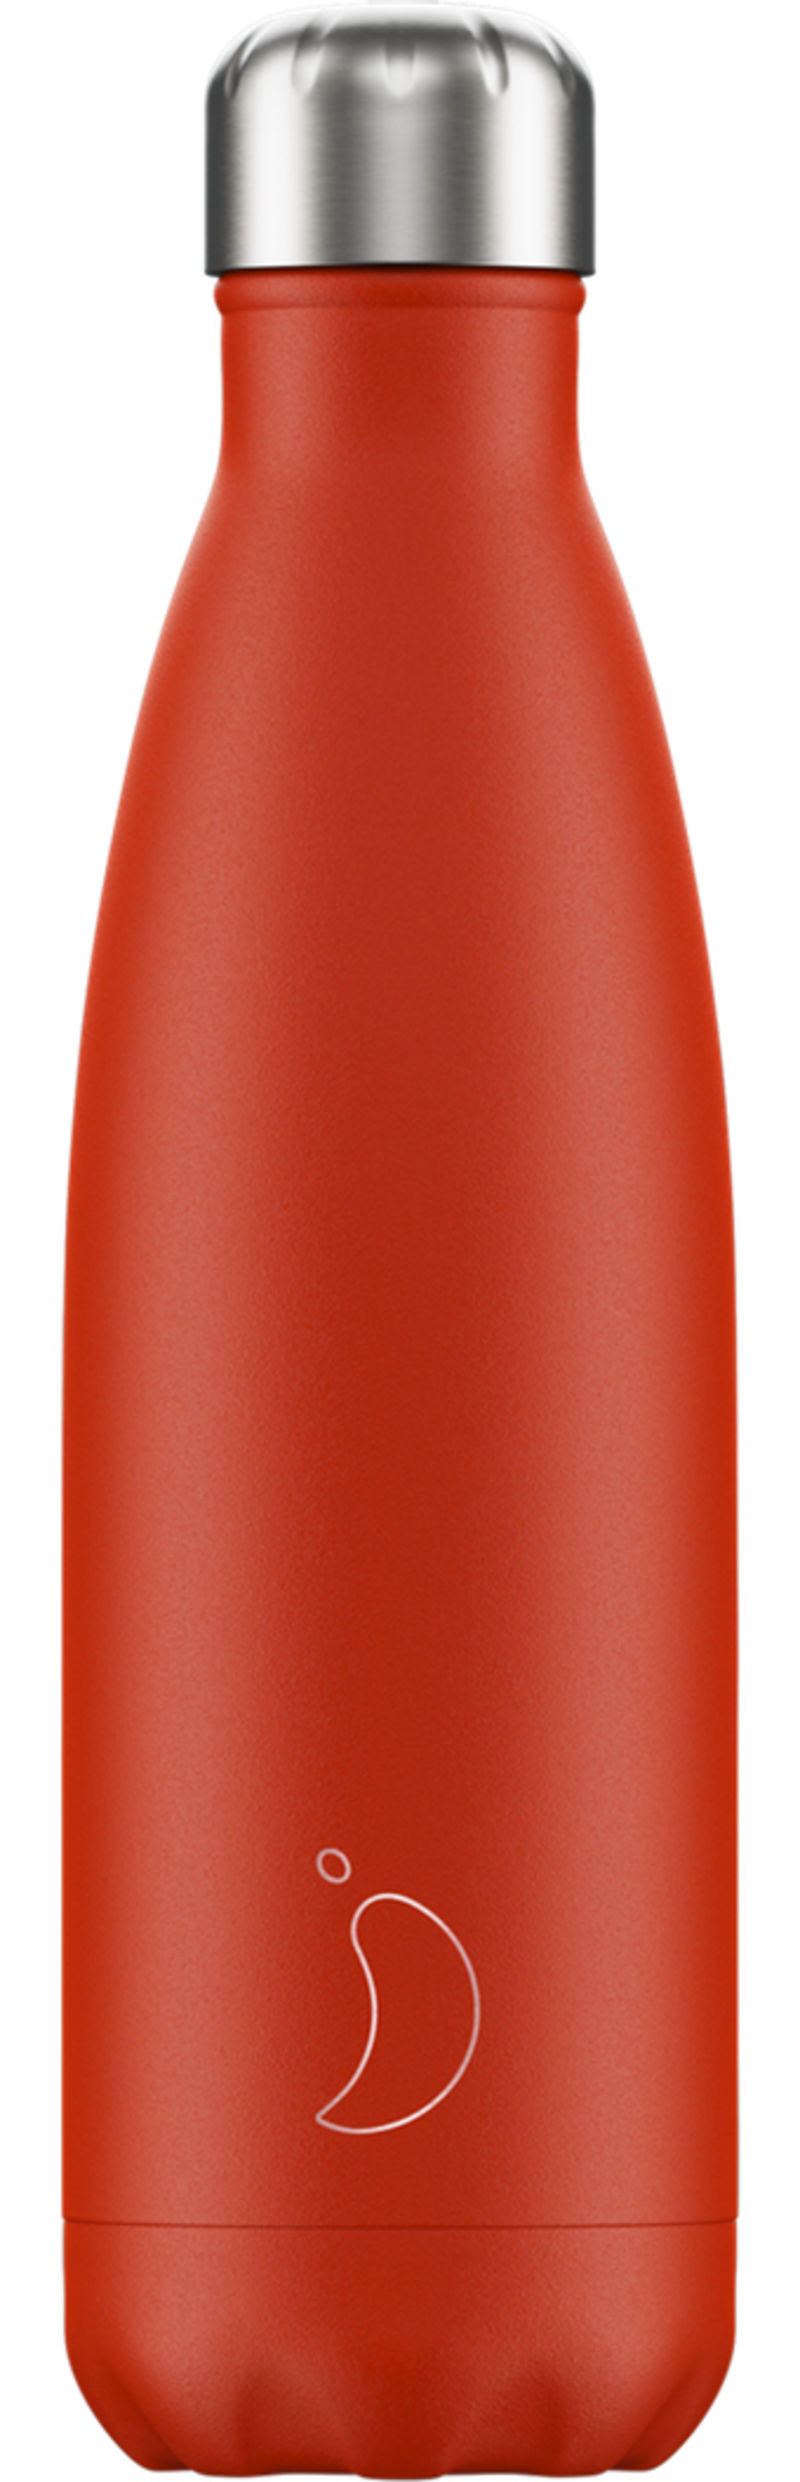 BOTELLA INOX ROJO NEON 750ml